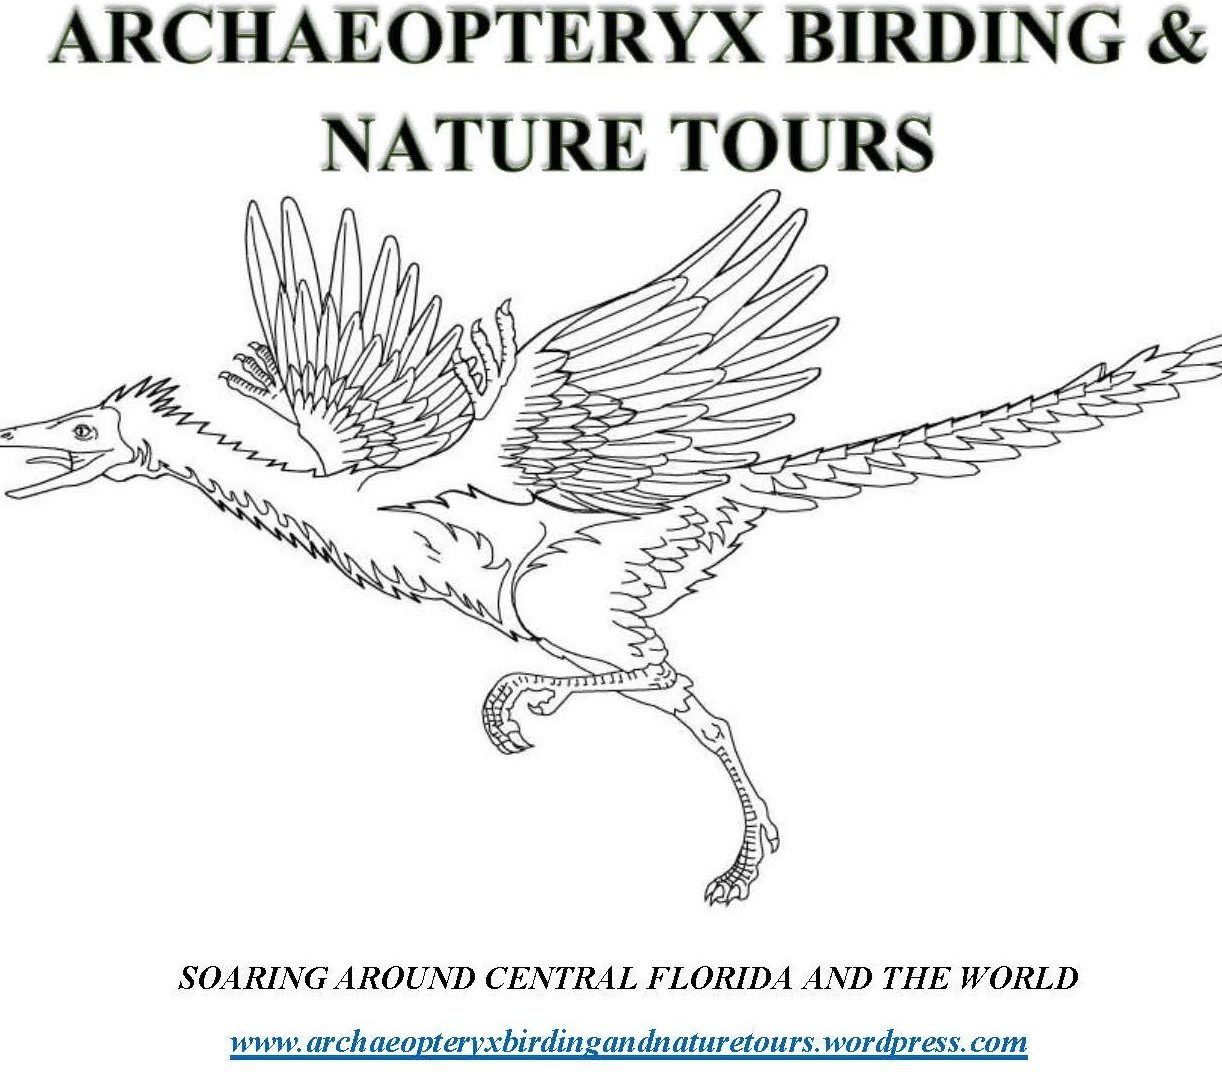 Archaeopteryx Birding and Nature Tours